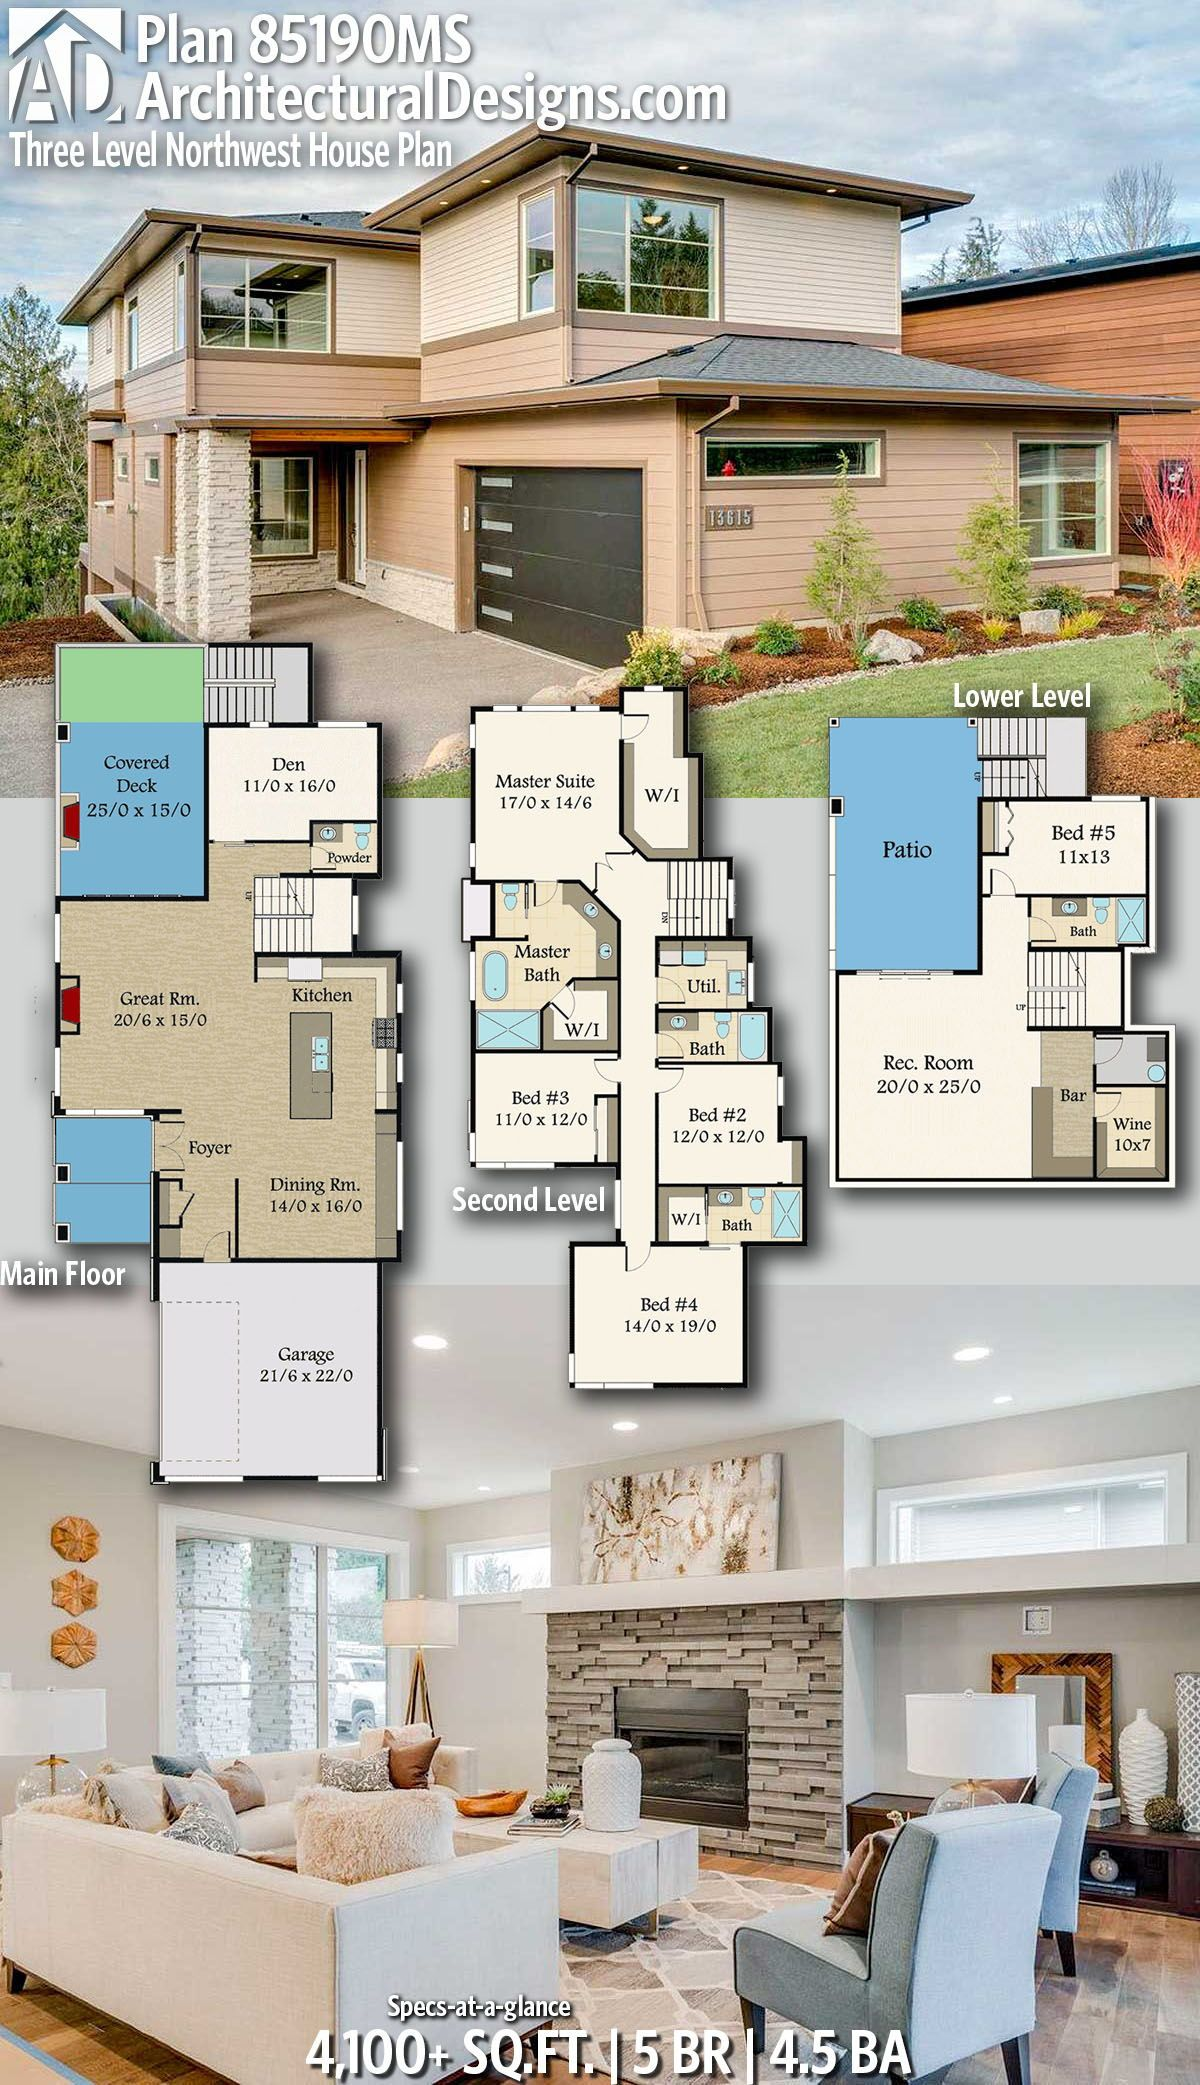 Architectural designs home plan ms gives you bedrooms